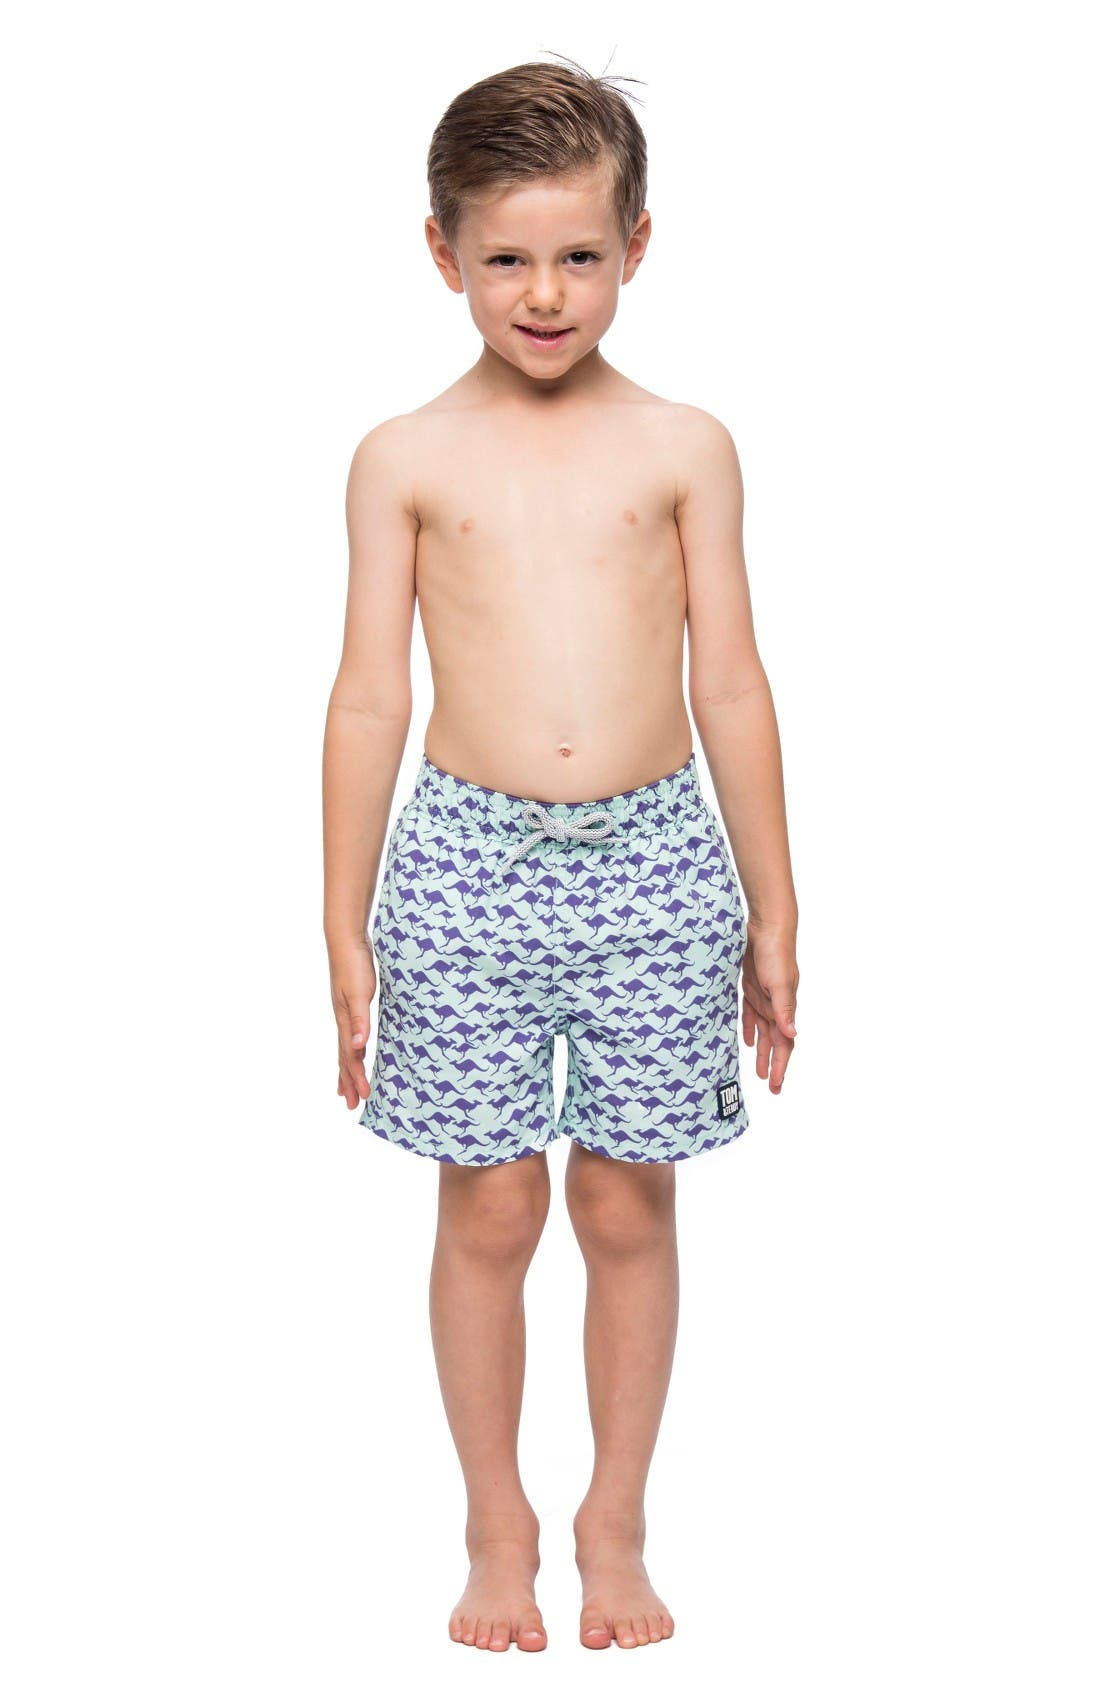 Kangaroo Swim Trunks,                         Main,                         color, Violet